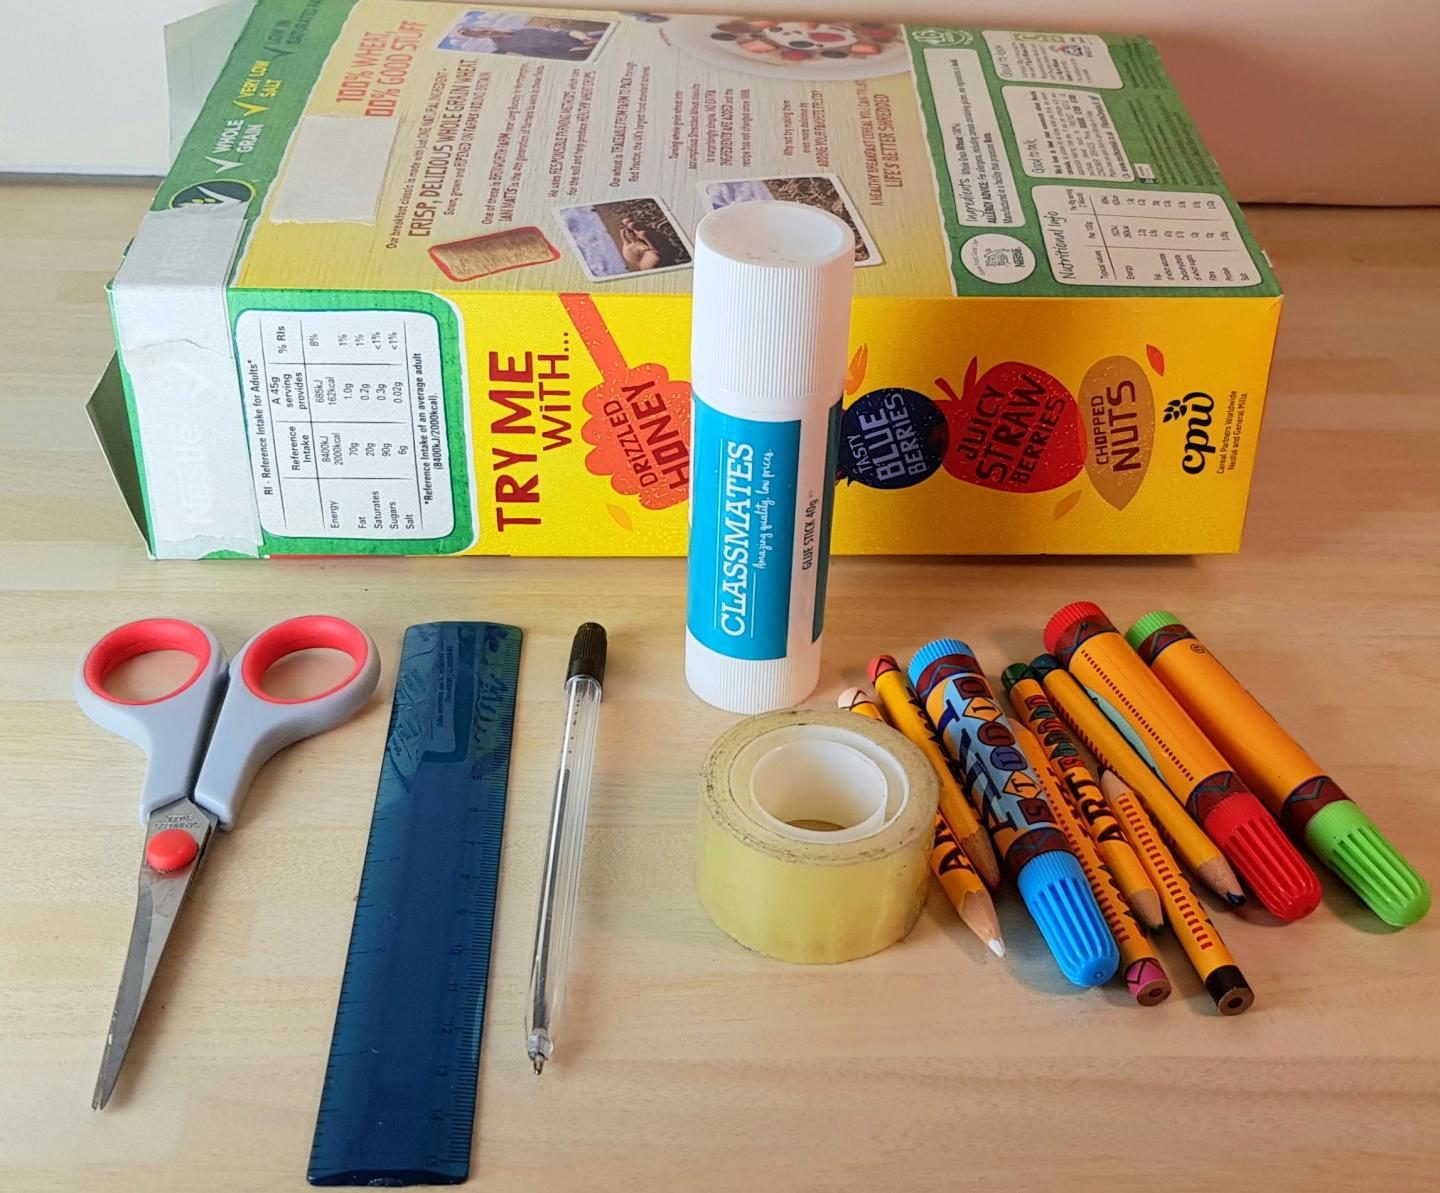 cereal box, glue stick, scissors, ruler, tape, pen, coloured pens and pencils